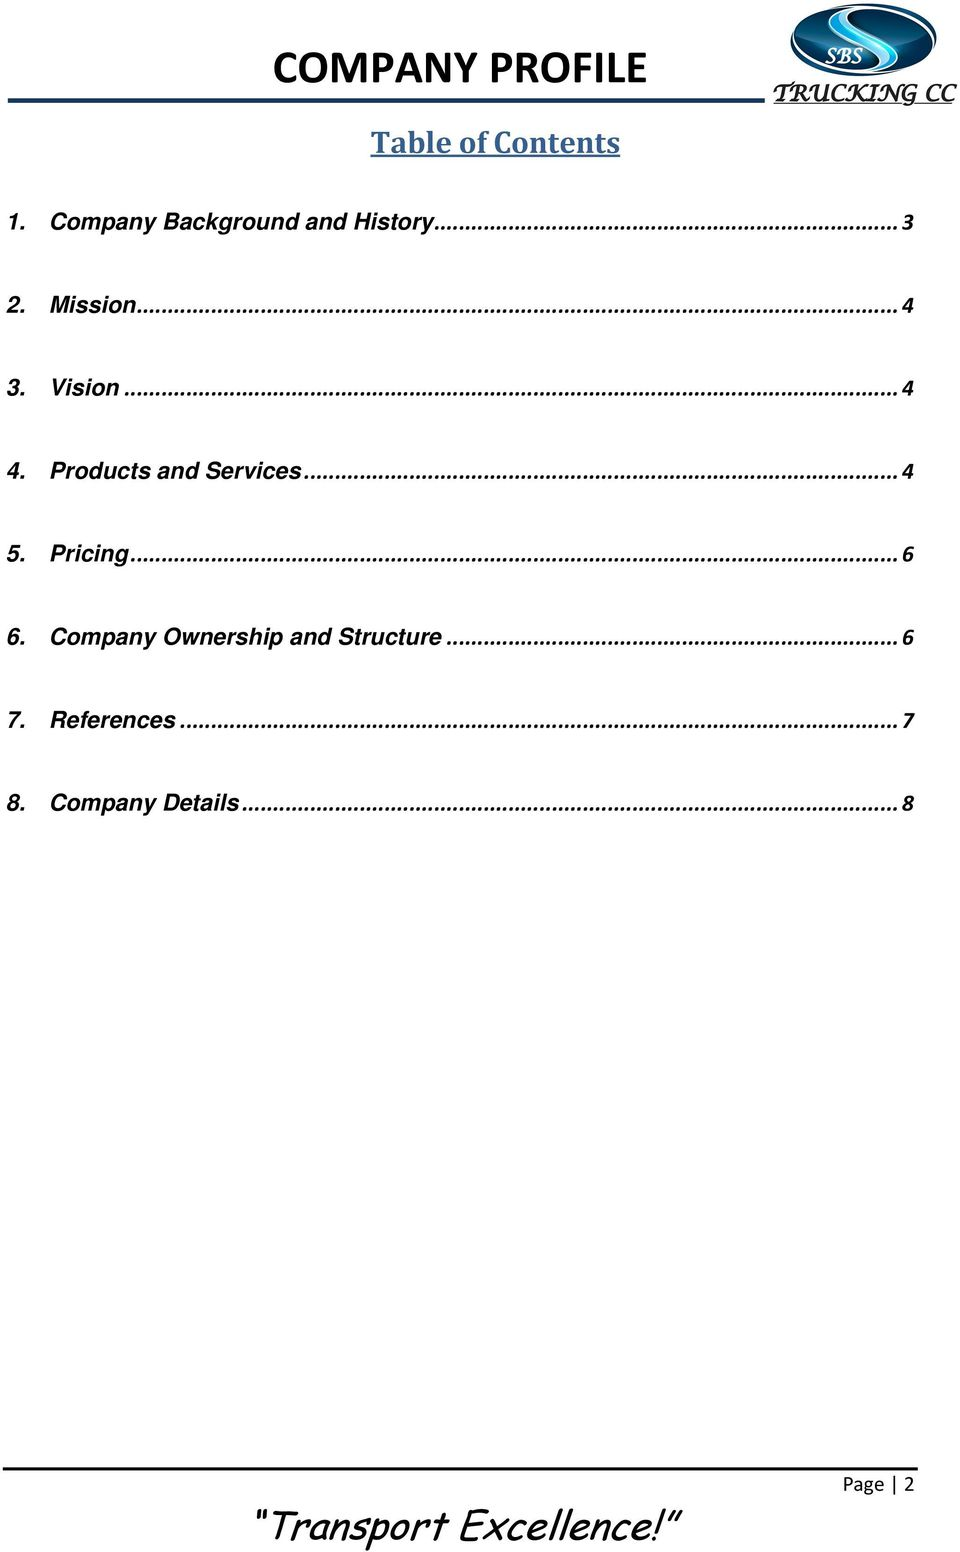 A Road Freight Transport and Courier Company Company Profile - PDF